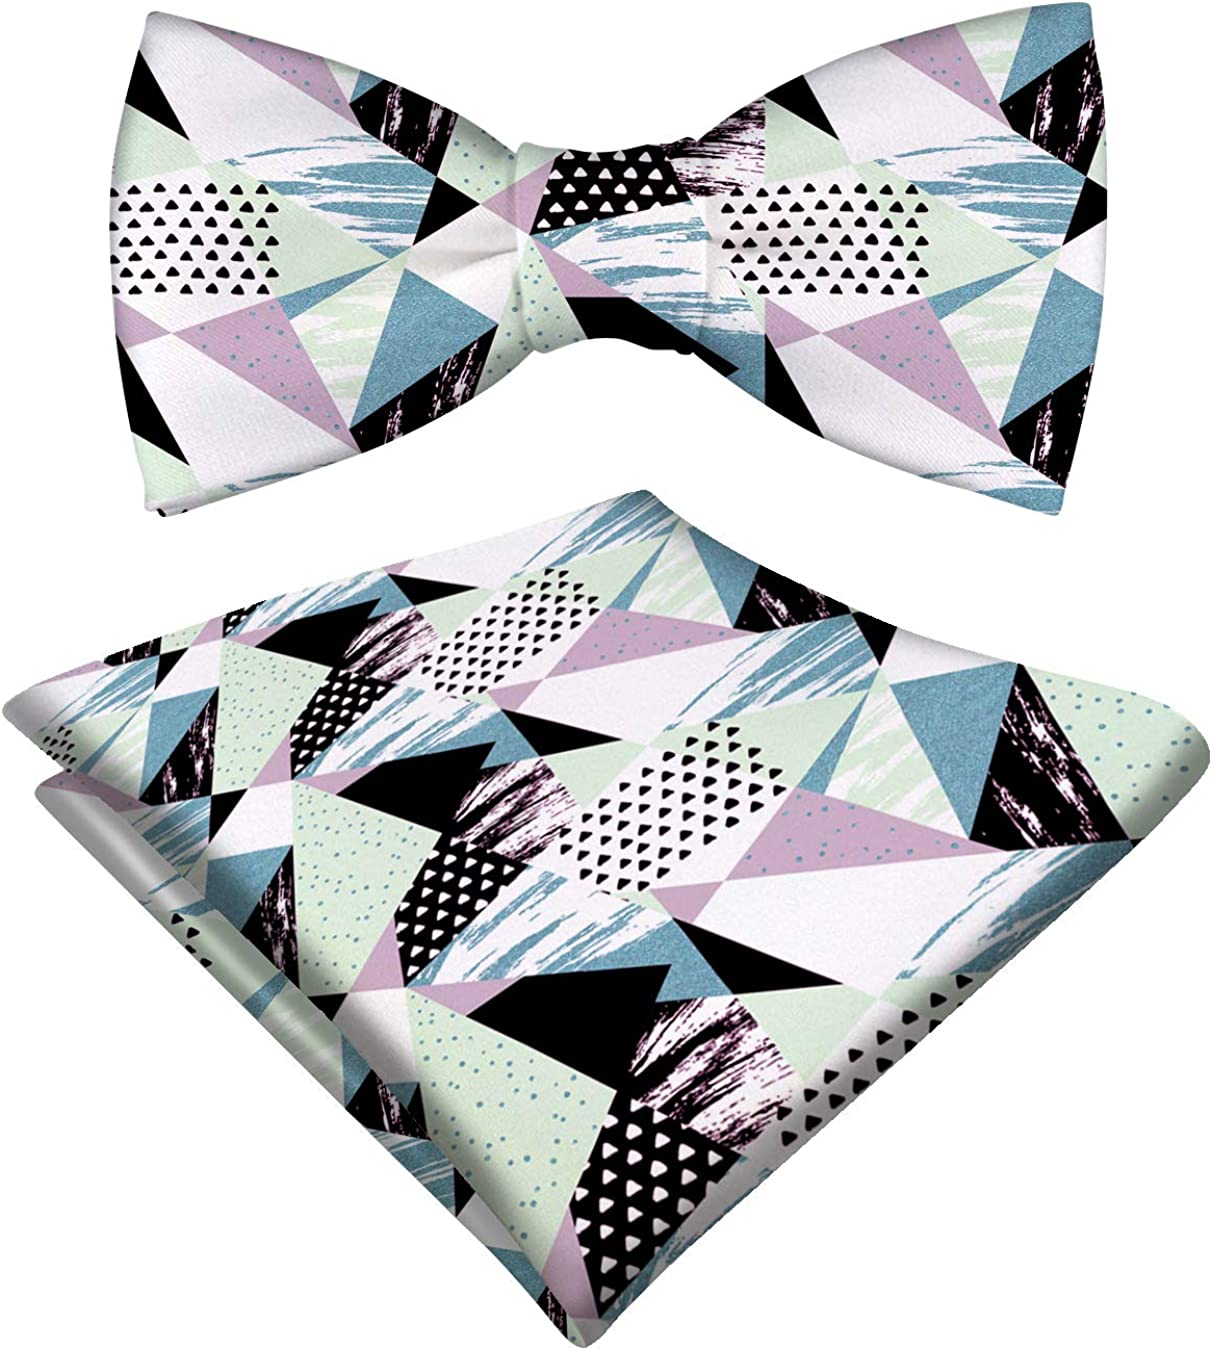 RADANYA Men'S Classic Bow Tie With Matching Pocket Square Set